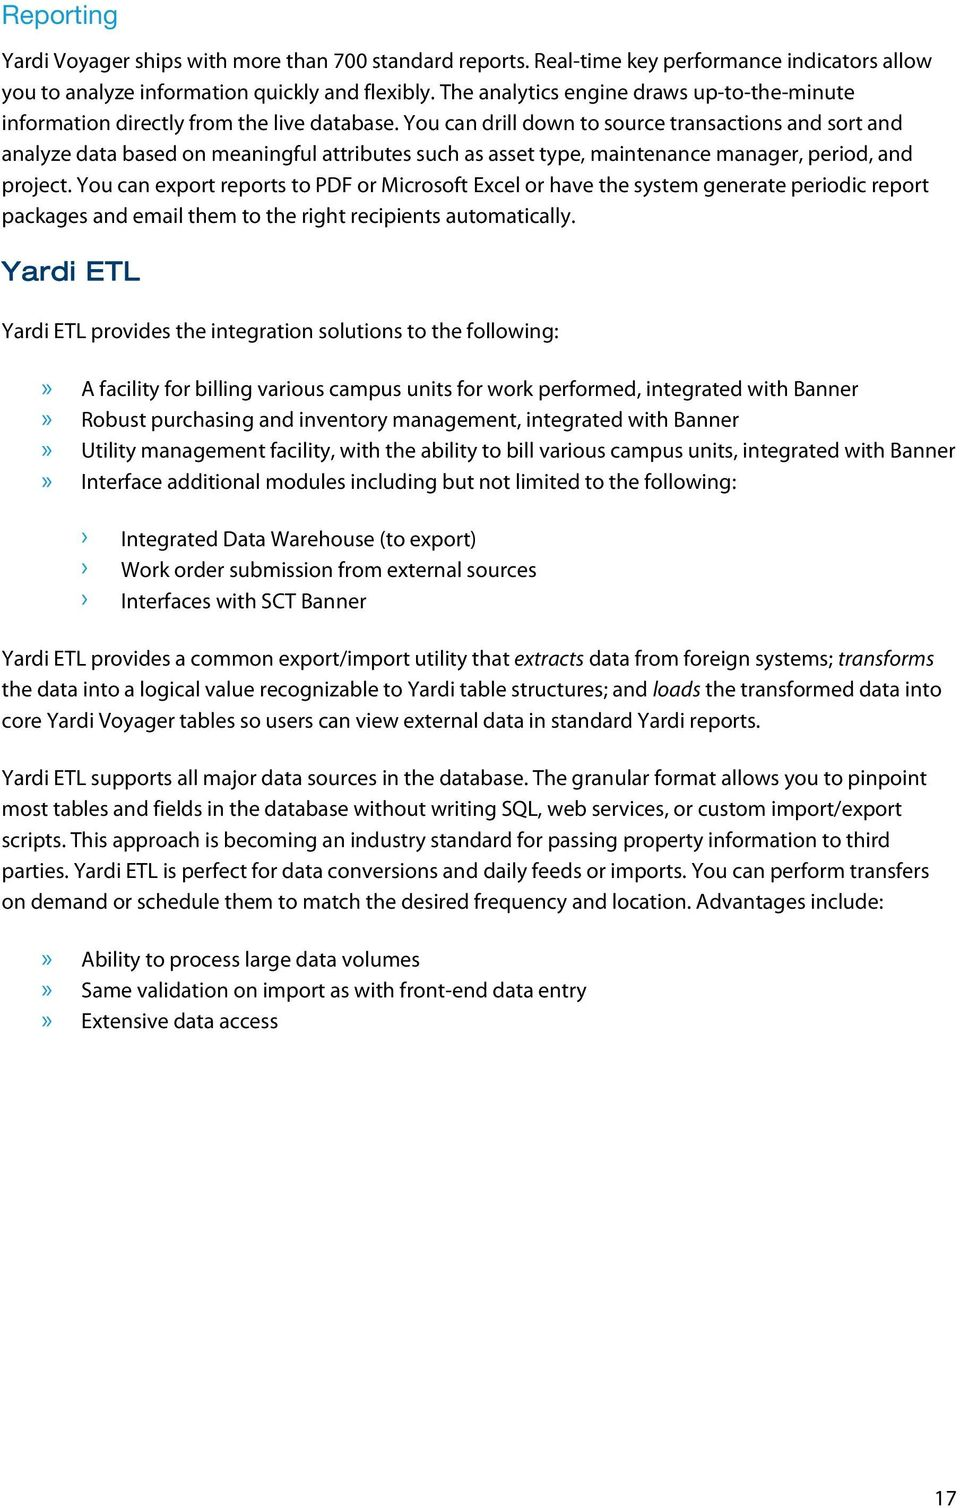 Response to Request for Information Software Services July